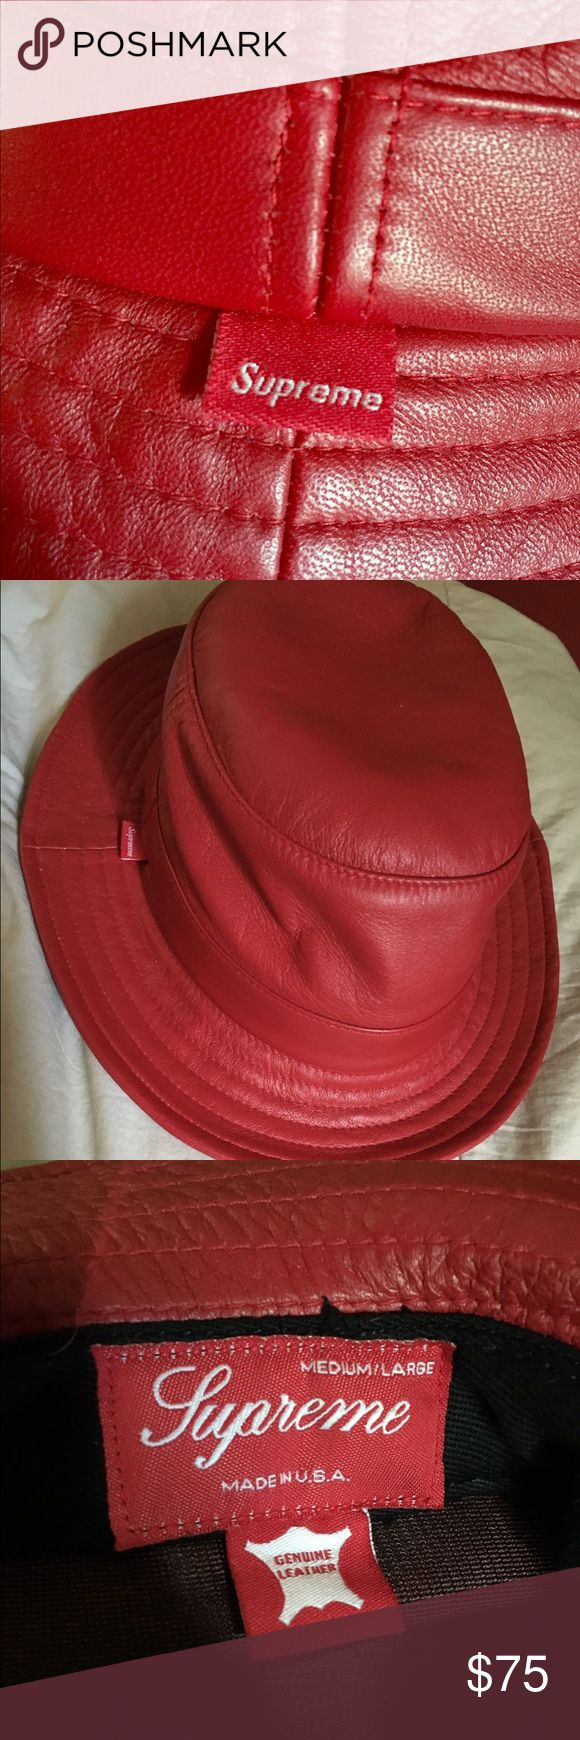 Supreme Crusher Bucket Hat Red Leather This is a never worn 10/10 Supreme Red Leather Crusher Bucket hat extremely rare and limited hat is signed by the famous Odd future group Supreme Accessories Hats